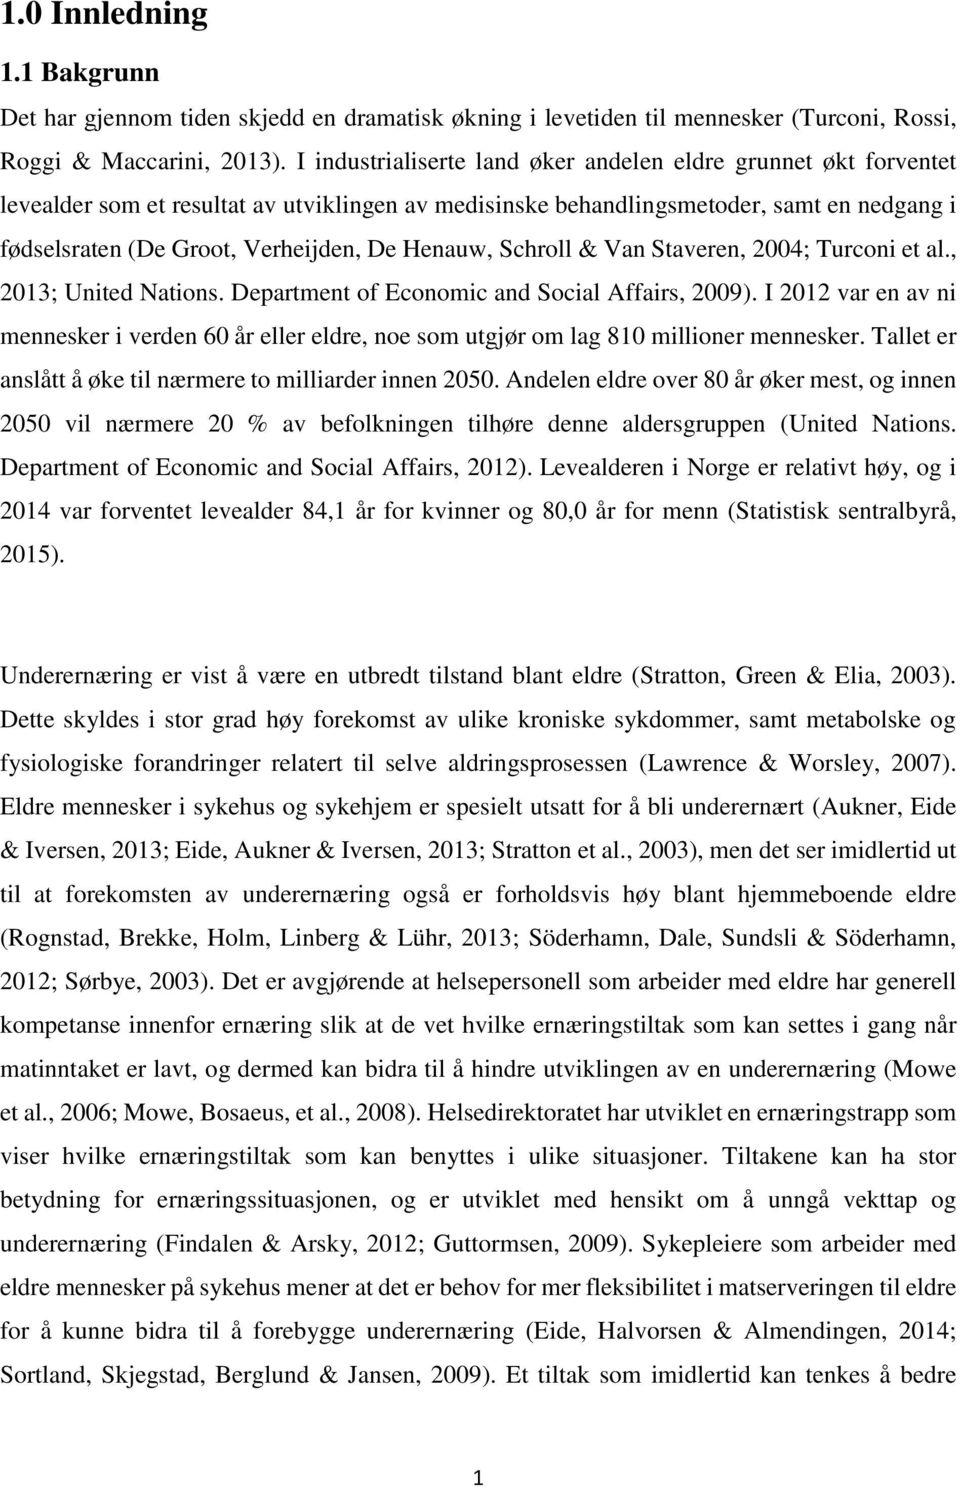 Henauw, Schroll & Van Staveren, 2004; Turconi et al., 2013; United Nations. Department of Economic and Social Affairs, 2009).